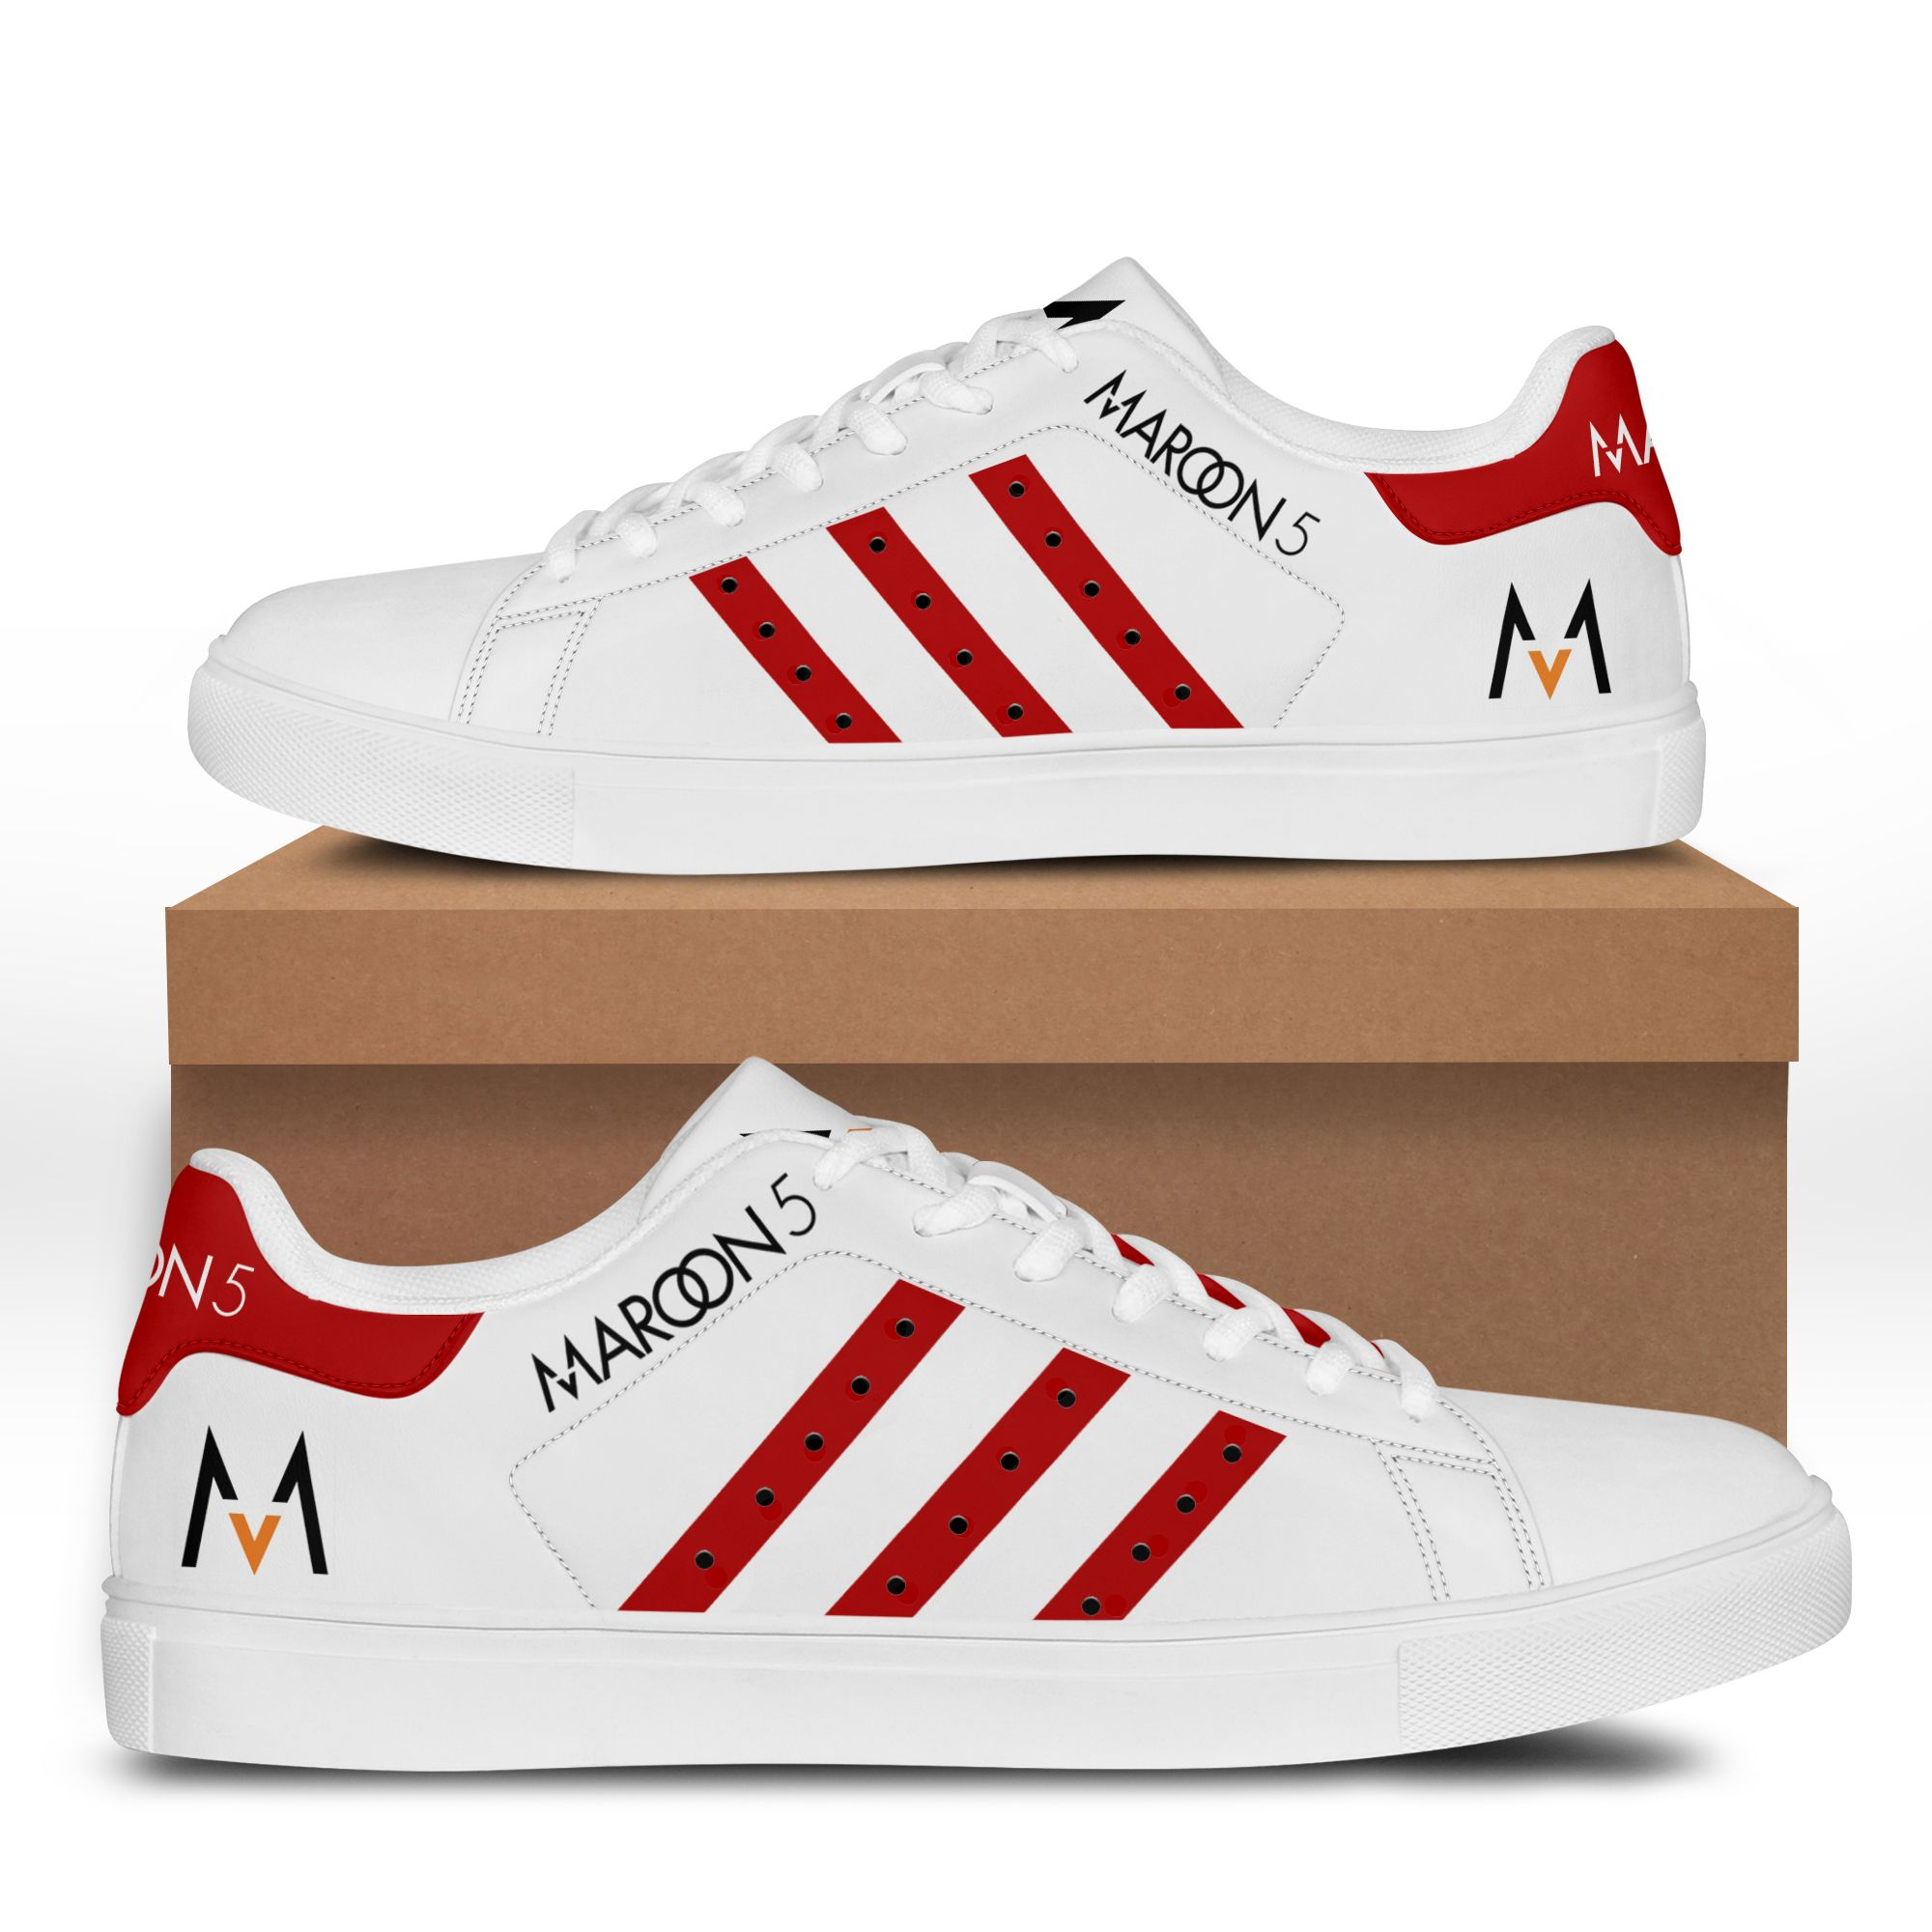 MAROON 5 red and white Stan Smith Sneaker